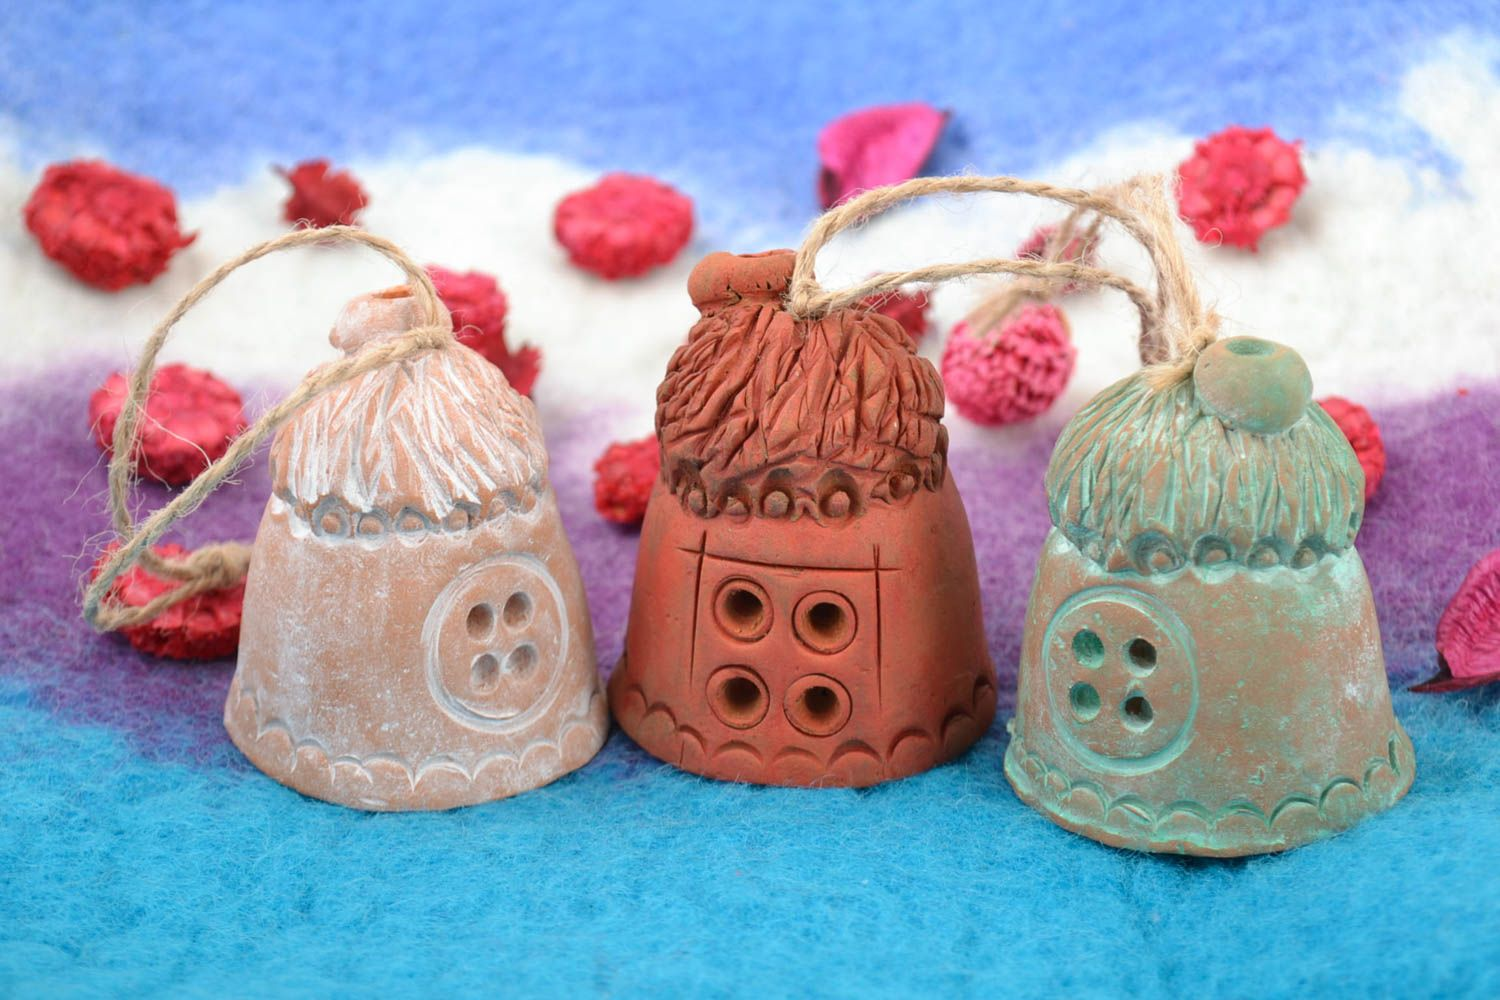 Set of 3 handmade decorative ceramic bells Houses of different colors with cords photo 1